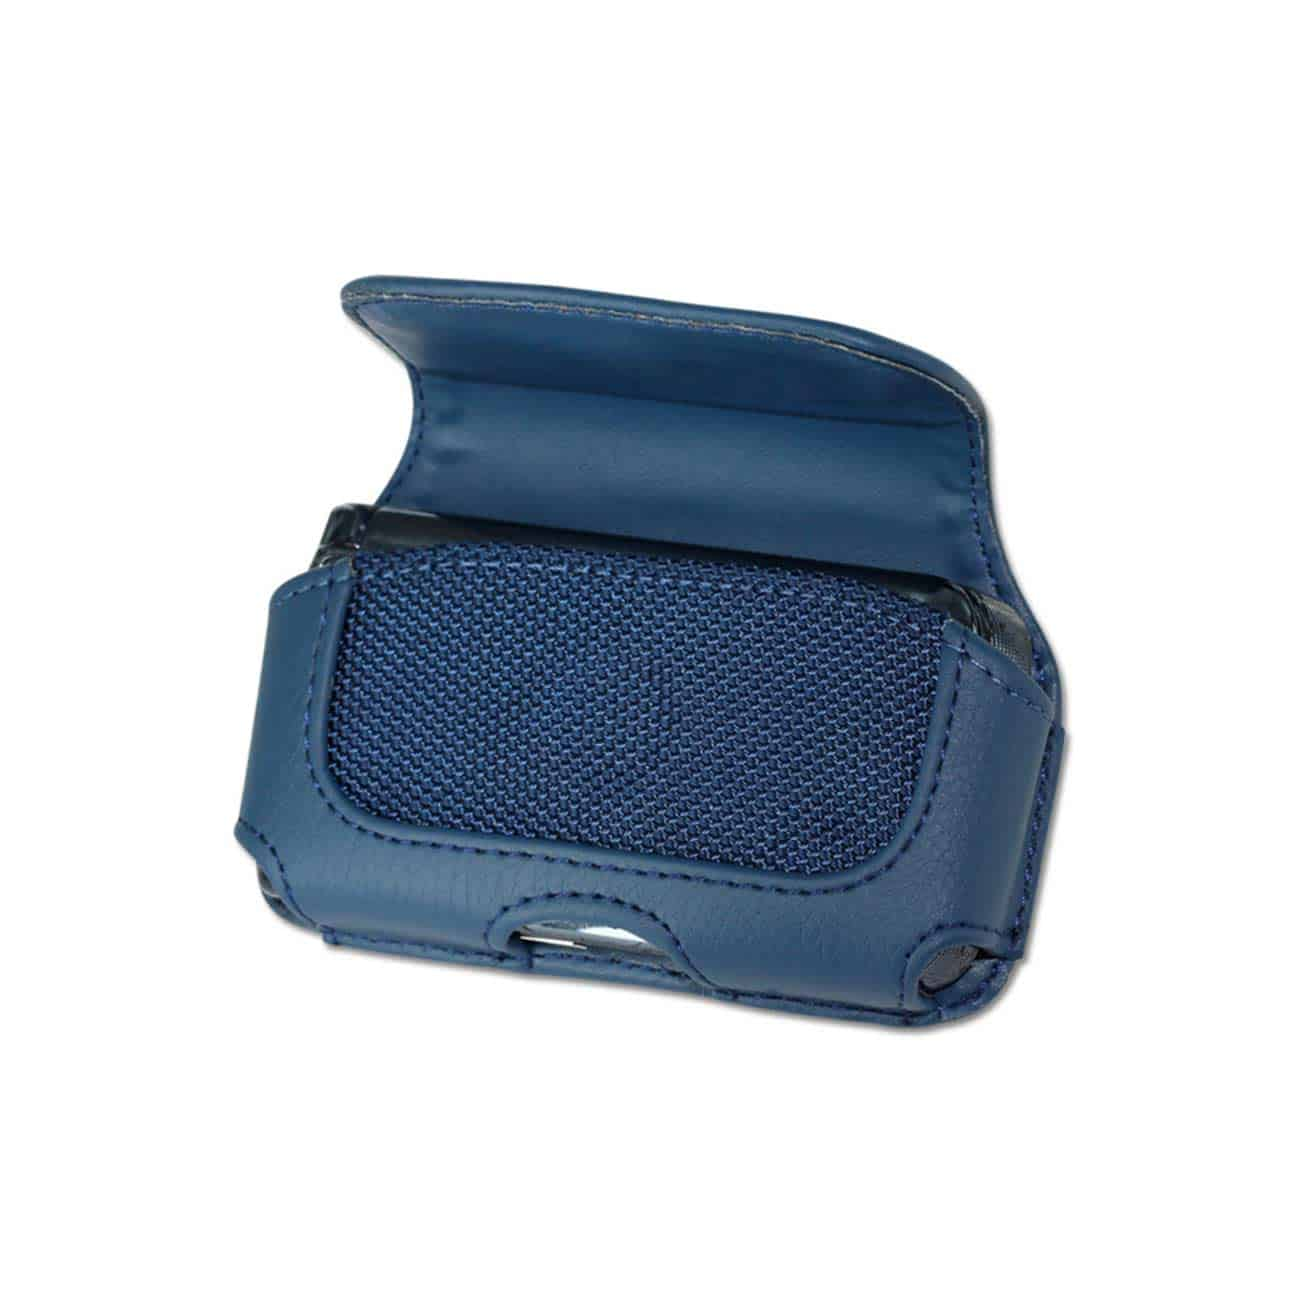 HORIZONTAL POUCH HP11A MOTOROLA V9  NAVY 4X0.5X2.1 INCHES